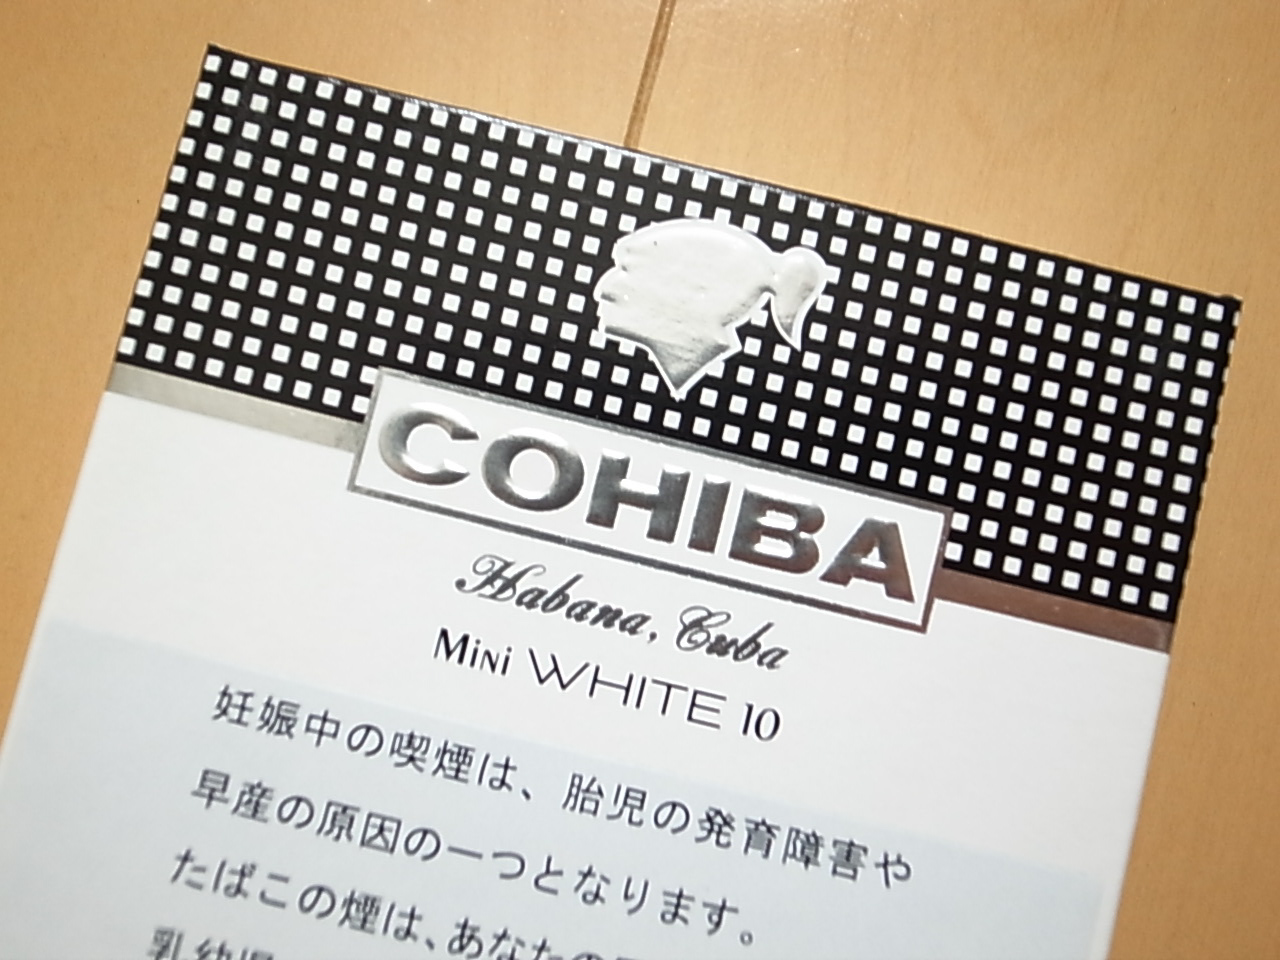 Cohiba mini white 3